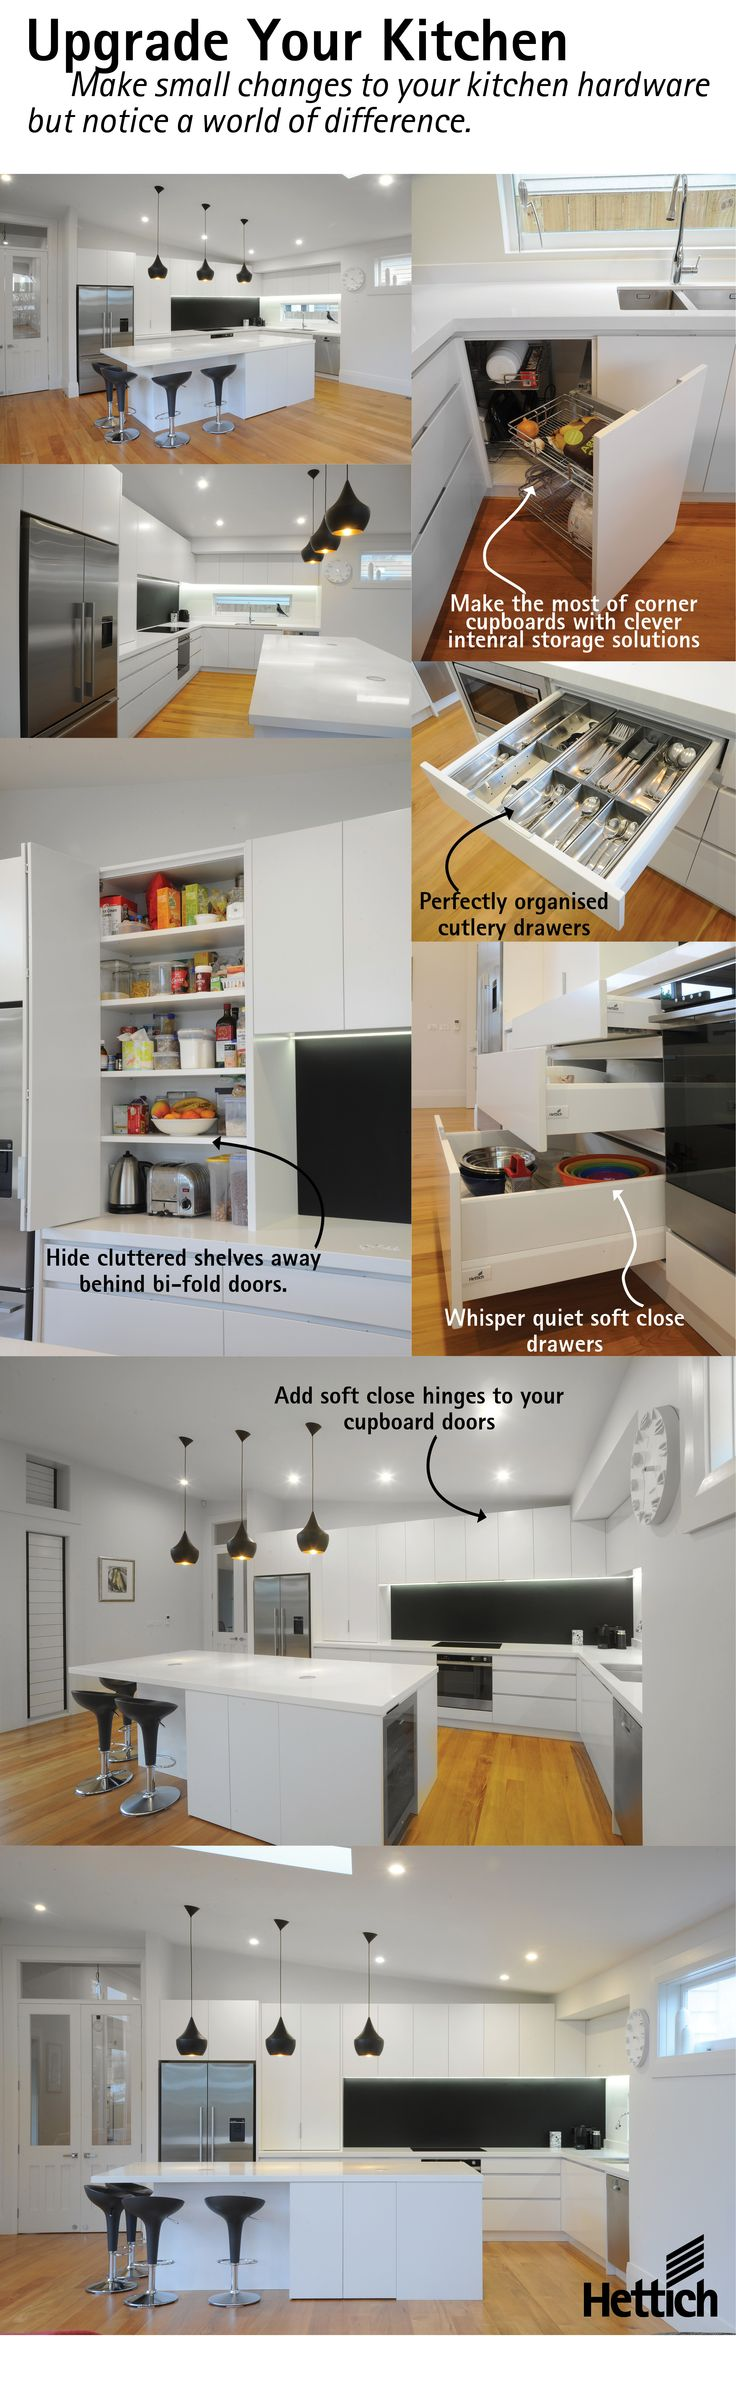 Want to improve your kitchen but can't afford a full make over? Why not simply change the hardware! By upgrading your hardware you will notice a world of difference. Click on the pin to find out more about Hettich products. #kitchenstorage